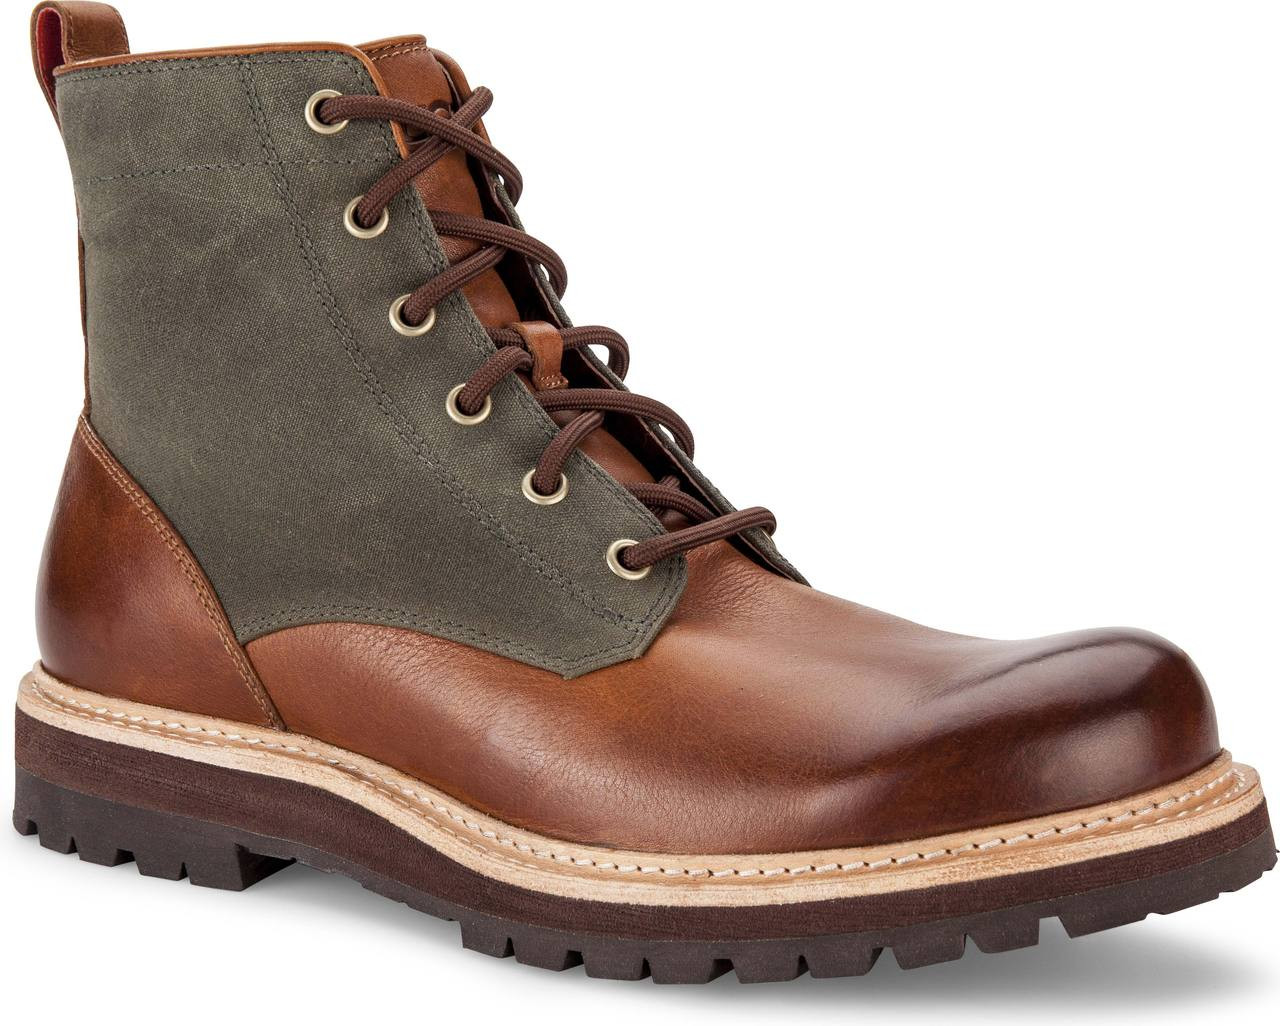 cea7d14c2 Ugg Mens Huntley Boots Chestnut Green - cheap watches mgc-gas.com